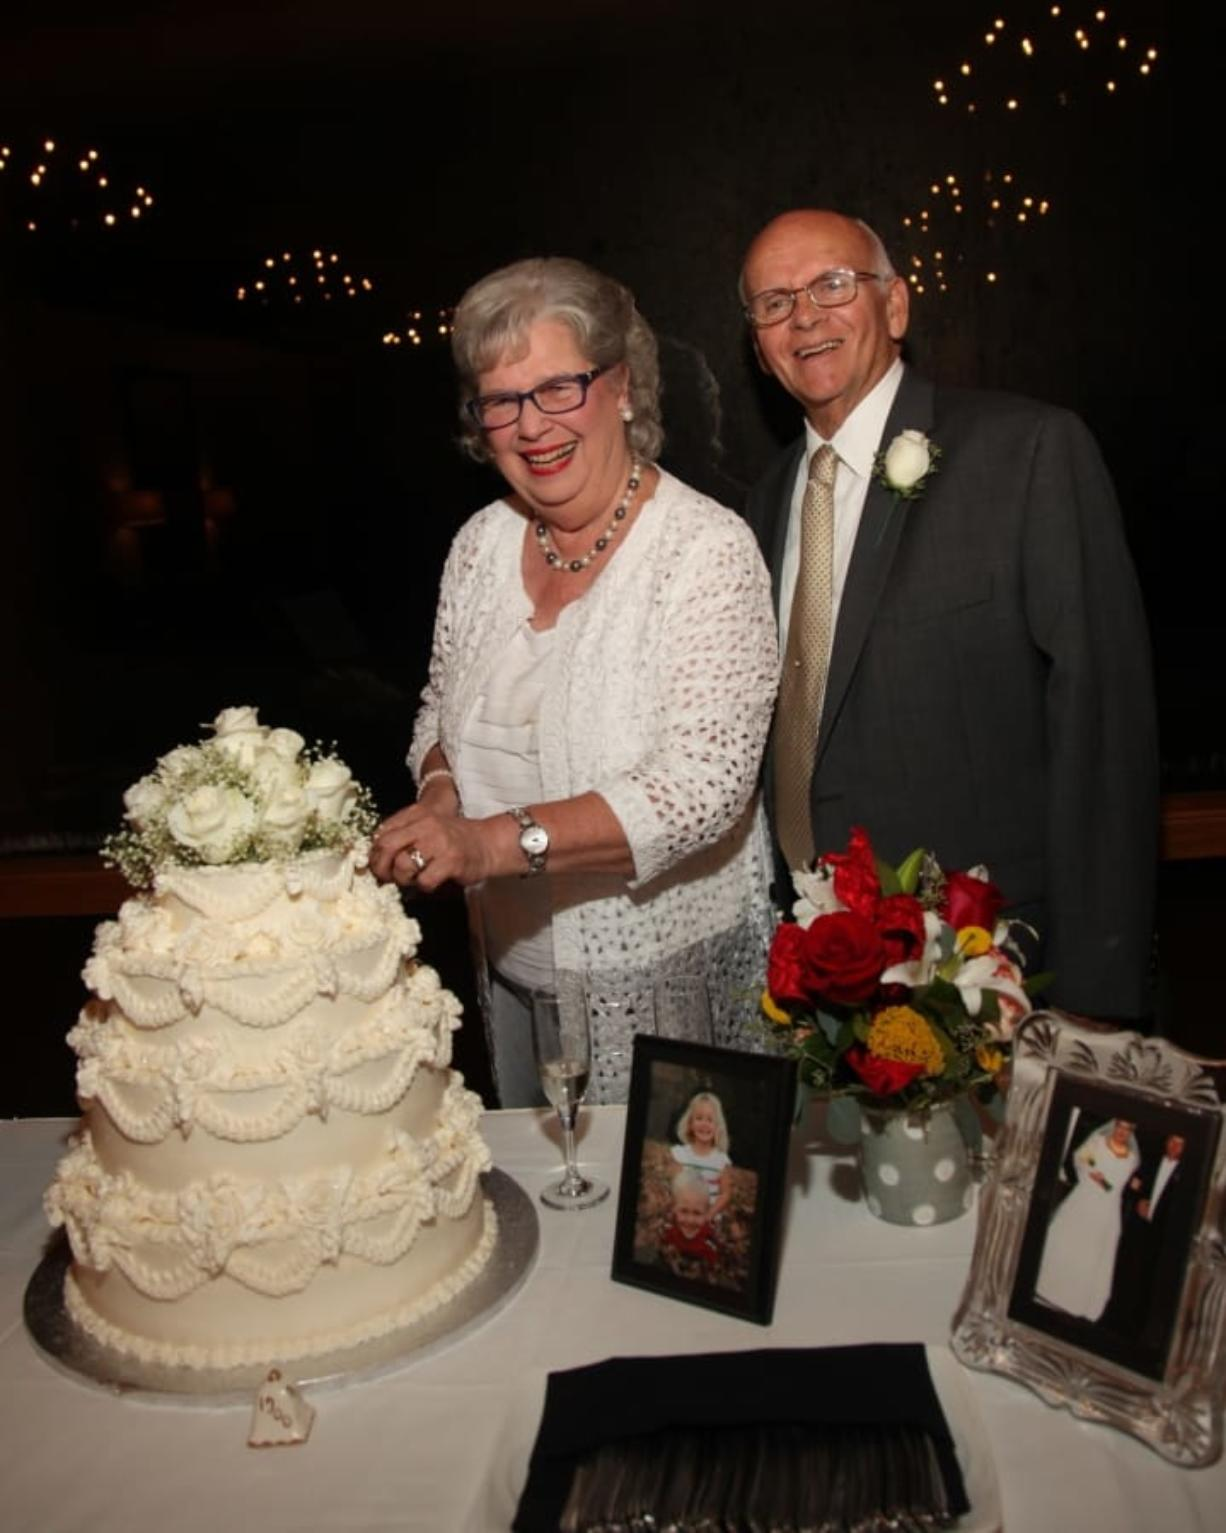 Mary Gammell and her husband, Ron, cutting the cake during their 50th wedding anniversary Aug. 13, 2016, in Tyler, Texas. Mary and Ron met when they were camp counselors and fell in love. They've now been married over 50 years. (iStock)